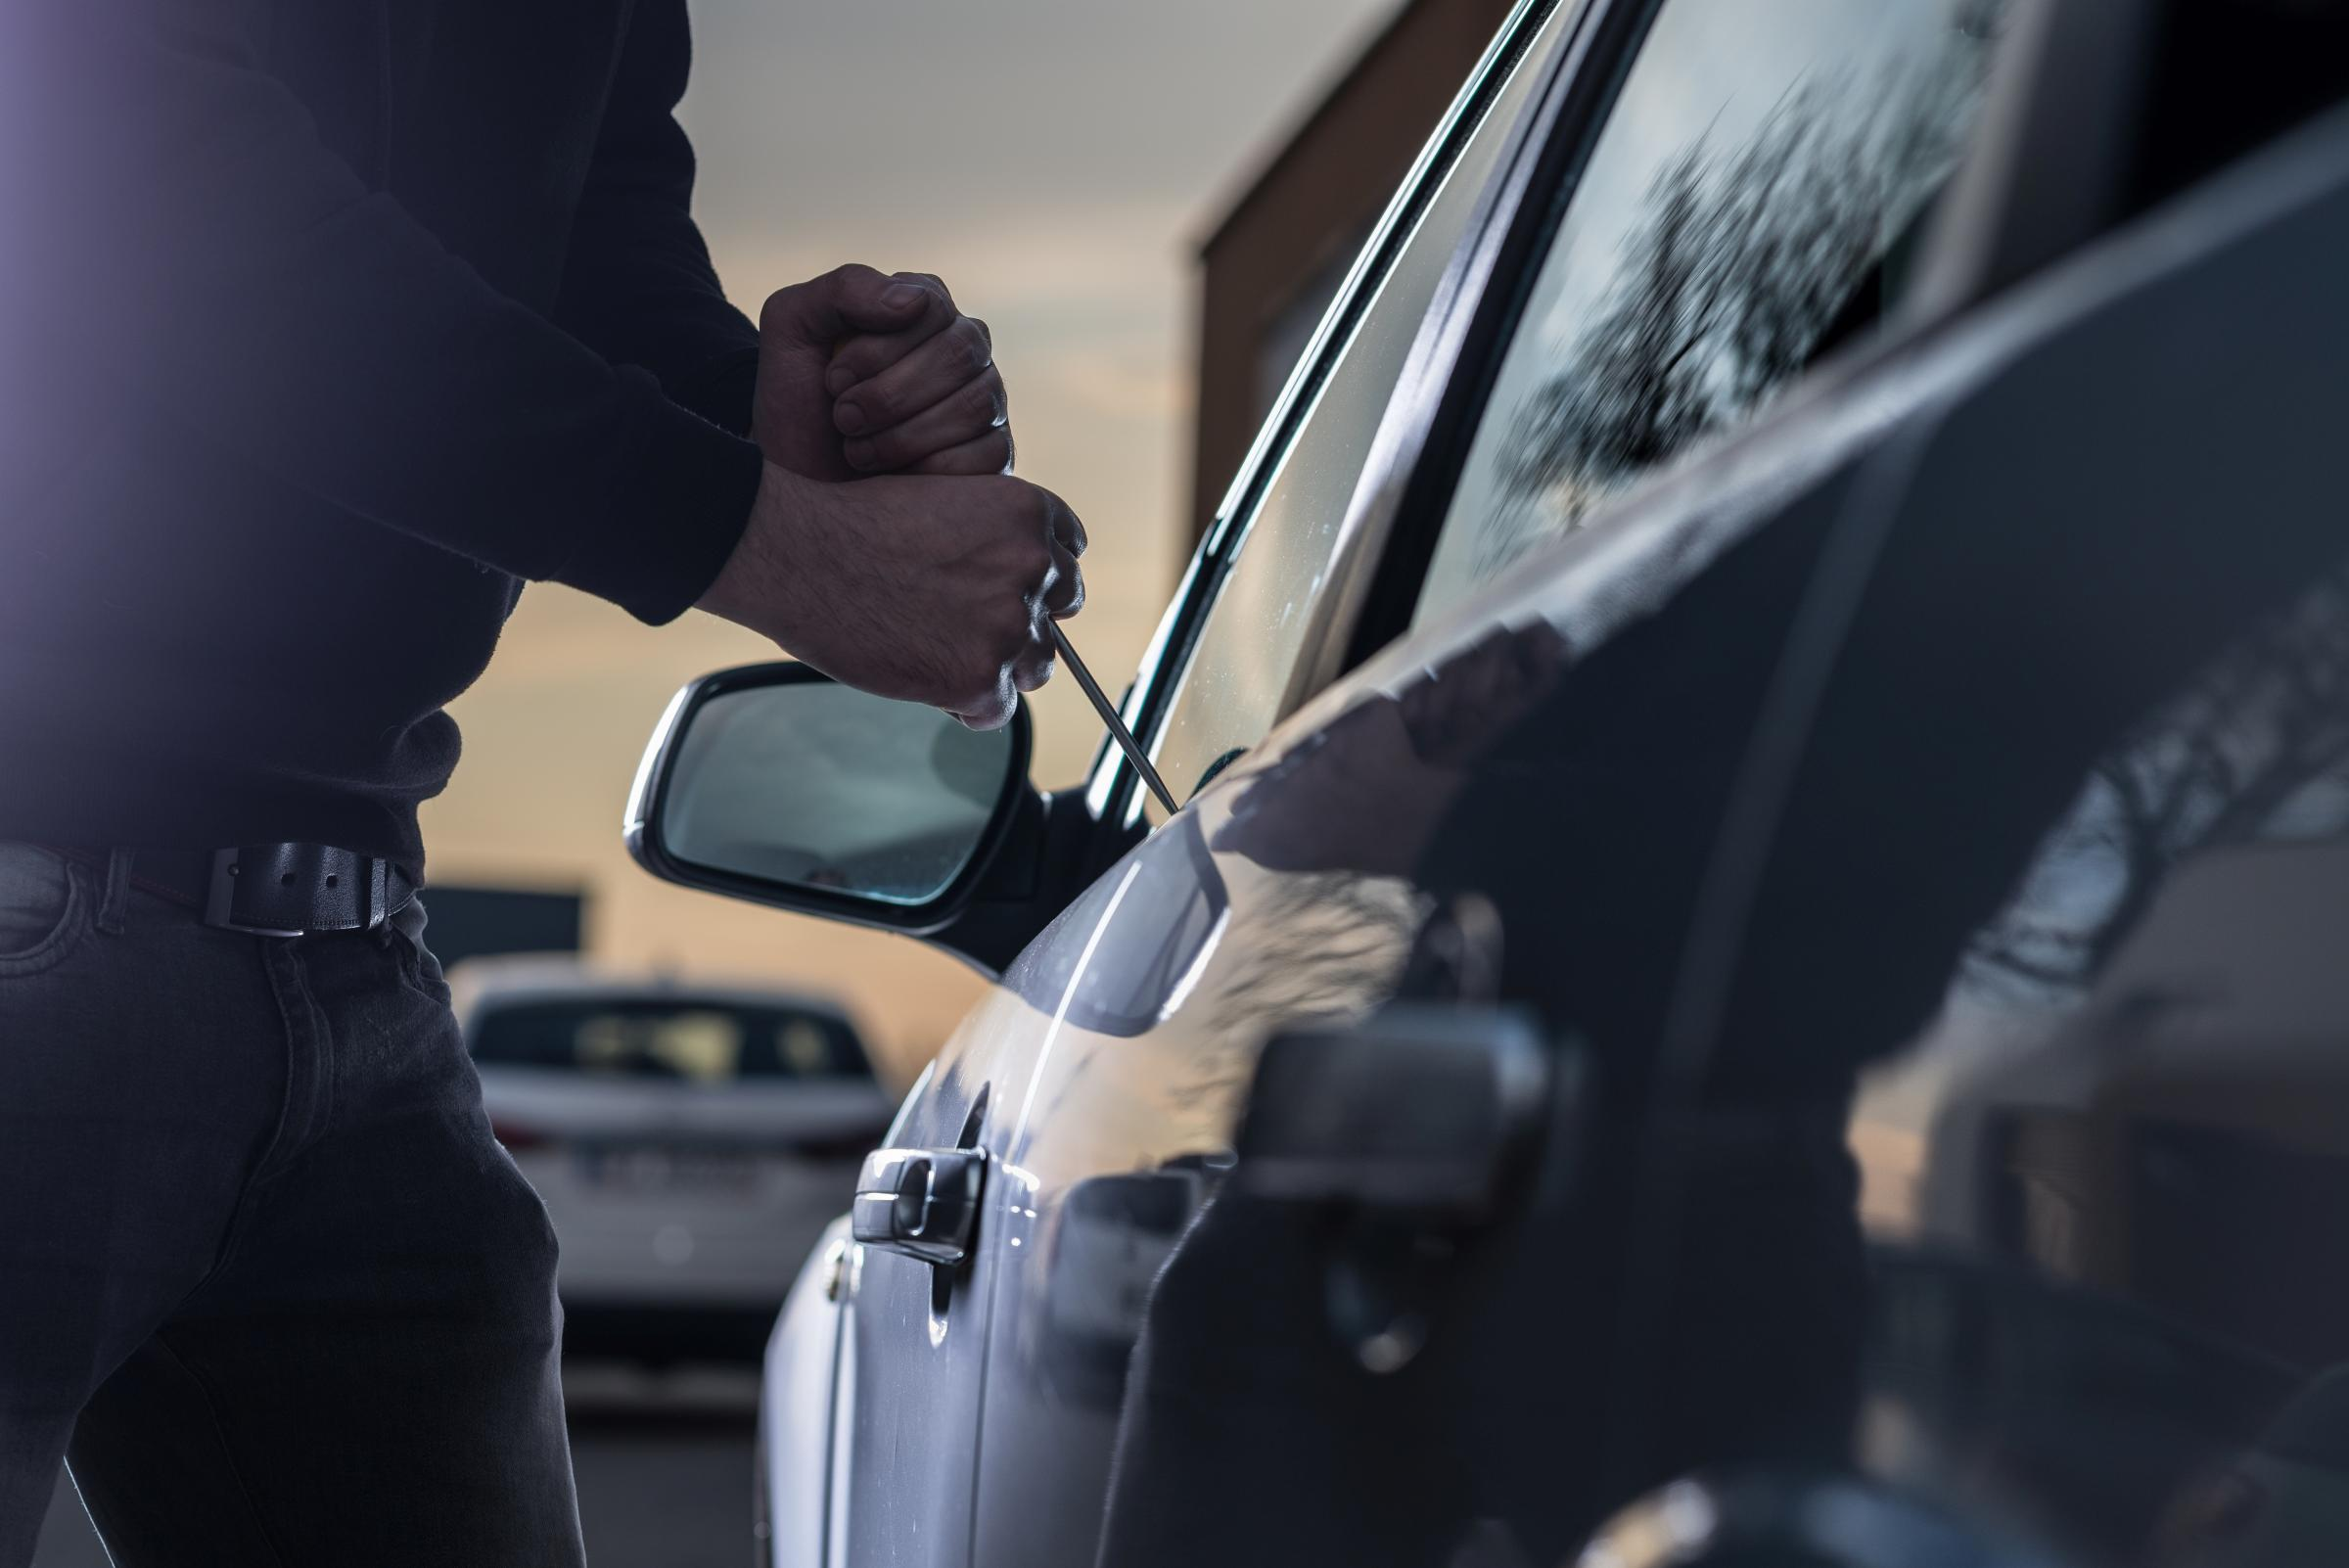 Car thieves are targetting vehicles across East Lancashire